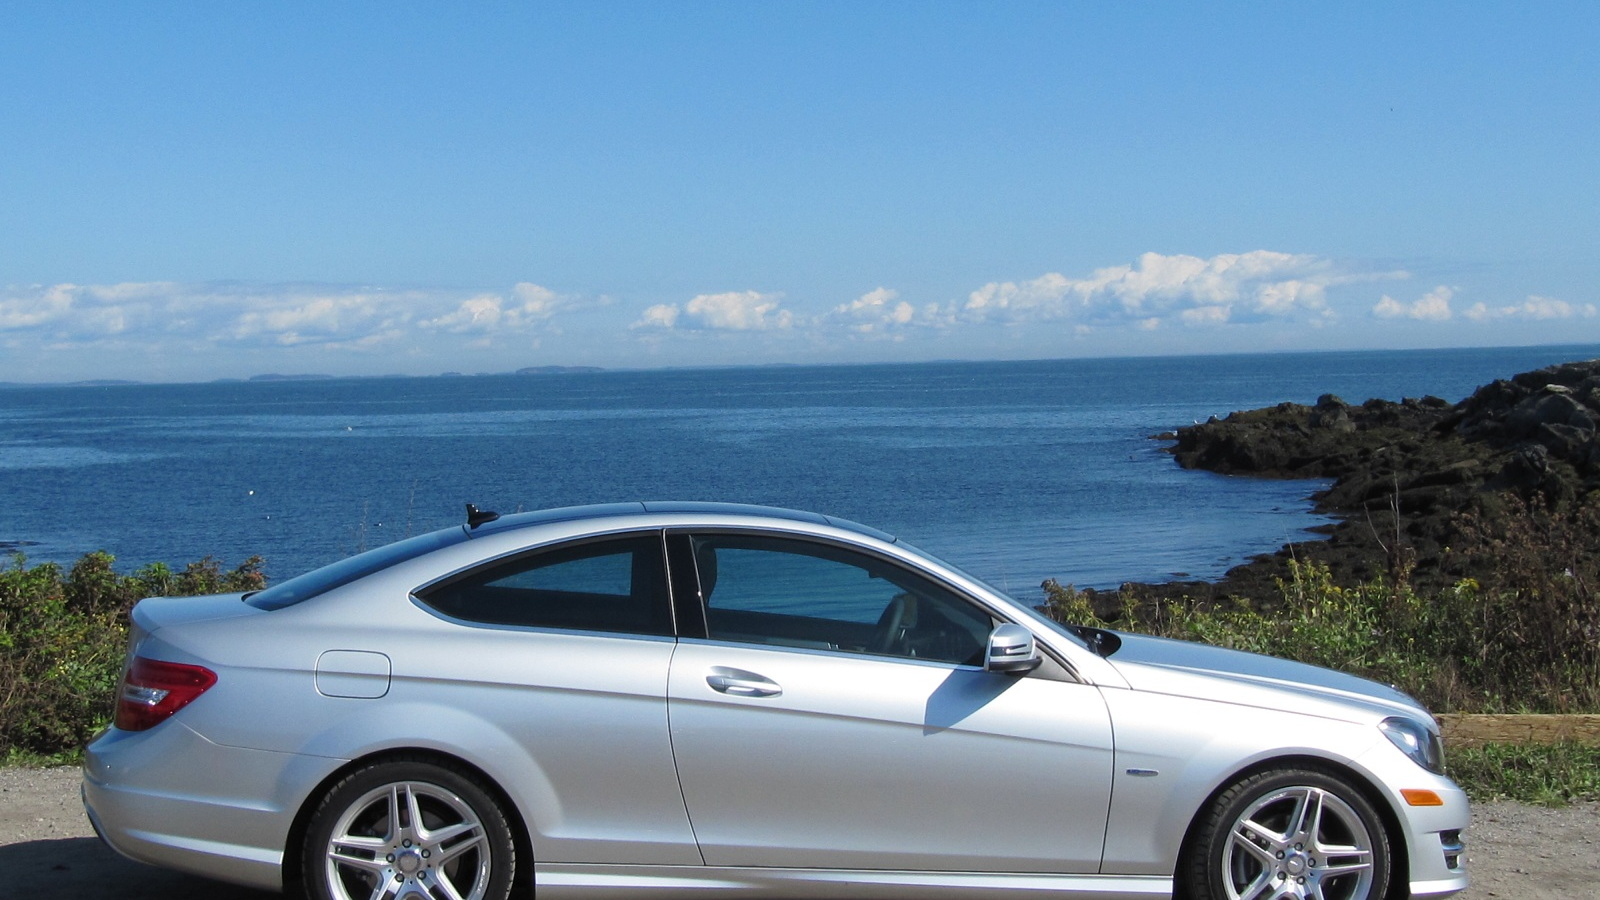 2012 Mercedes-Benz C 250, Maine, September 2011